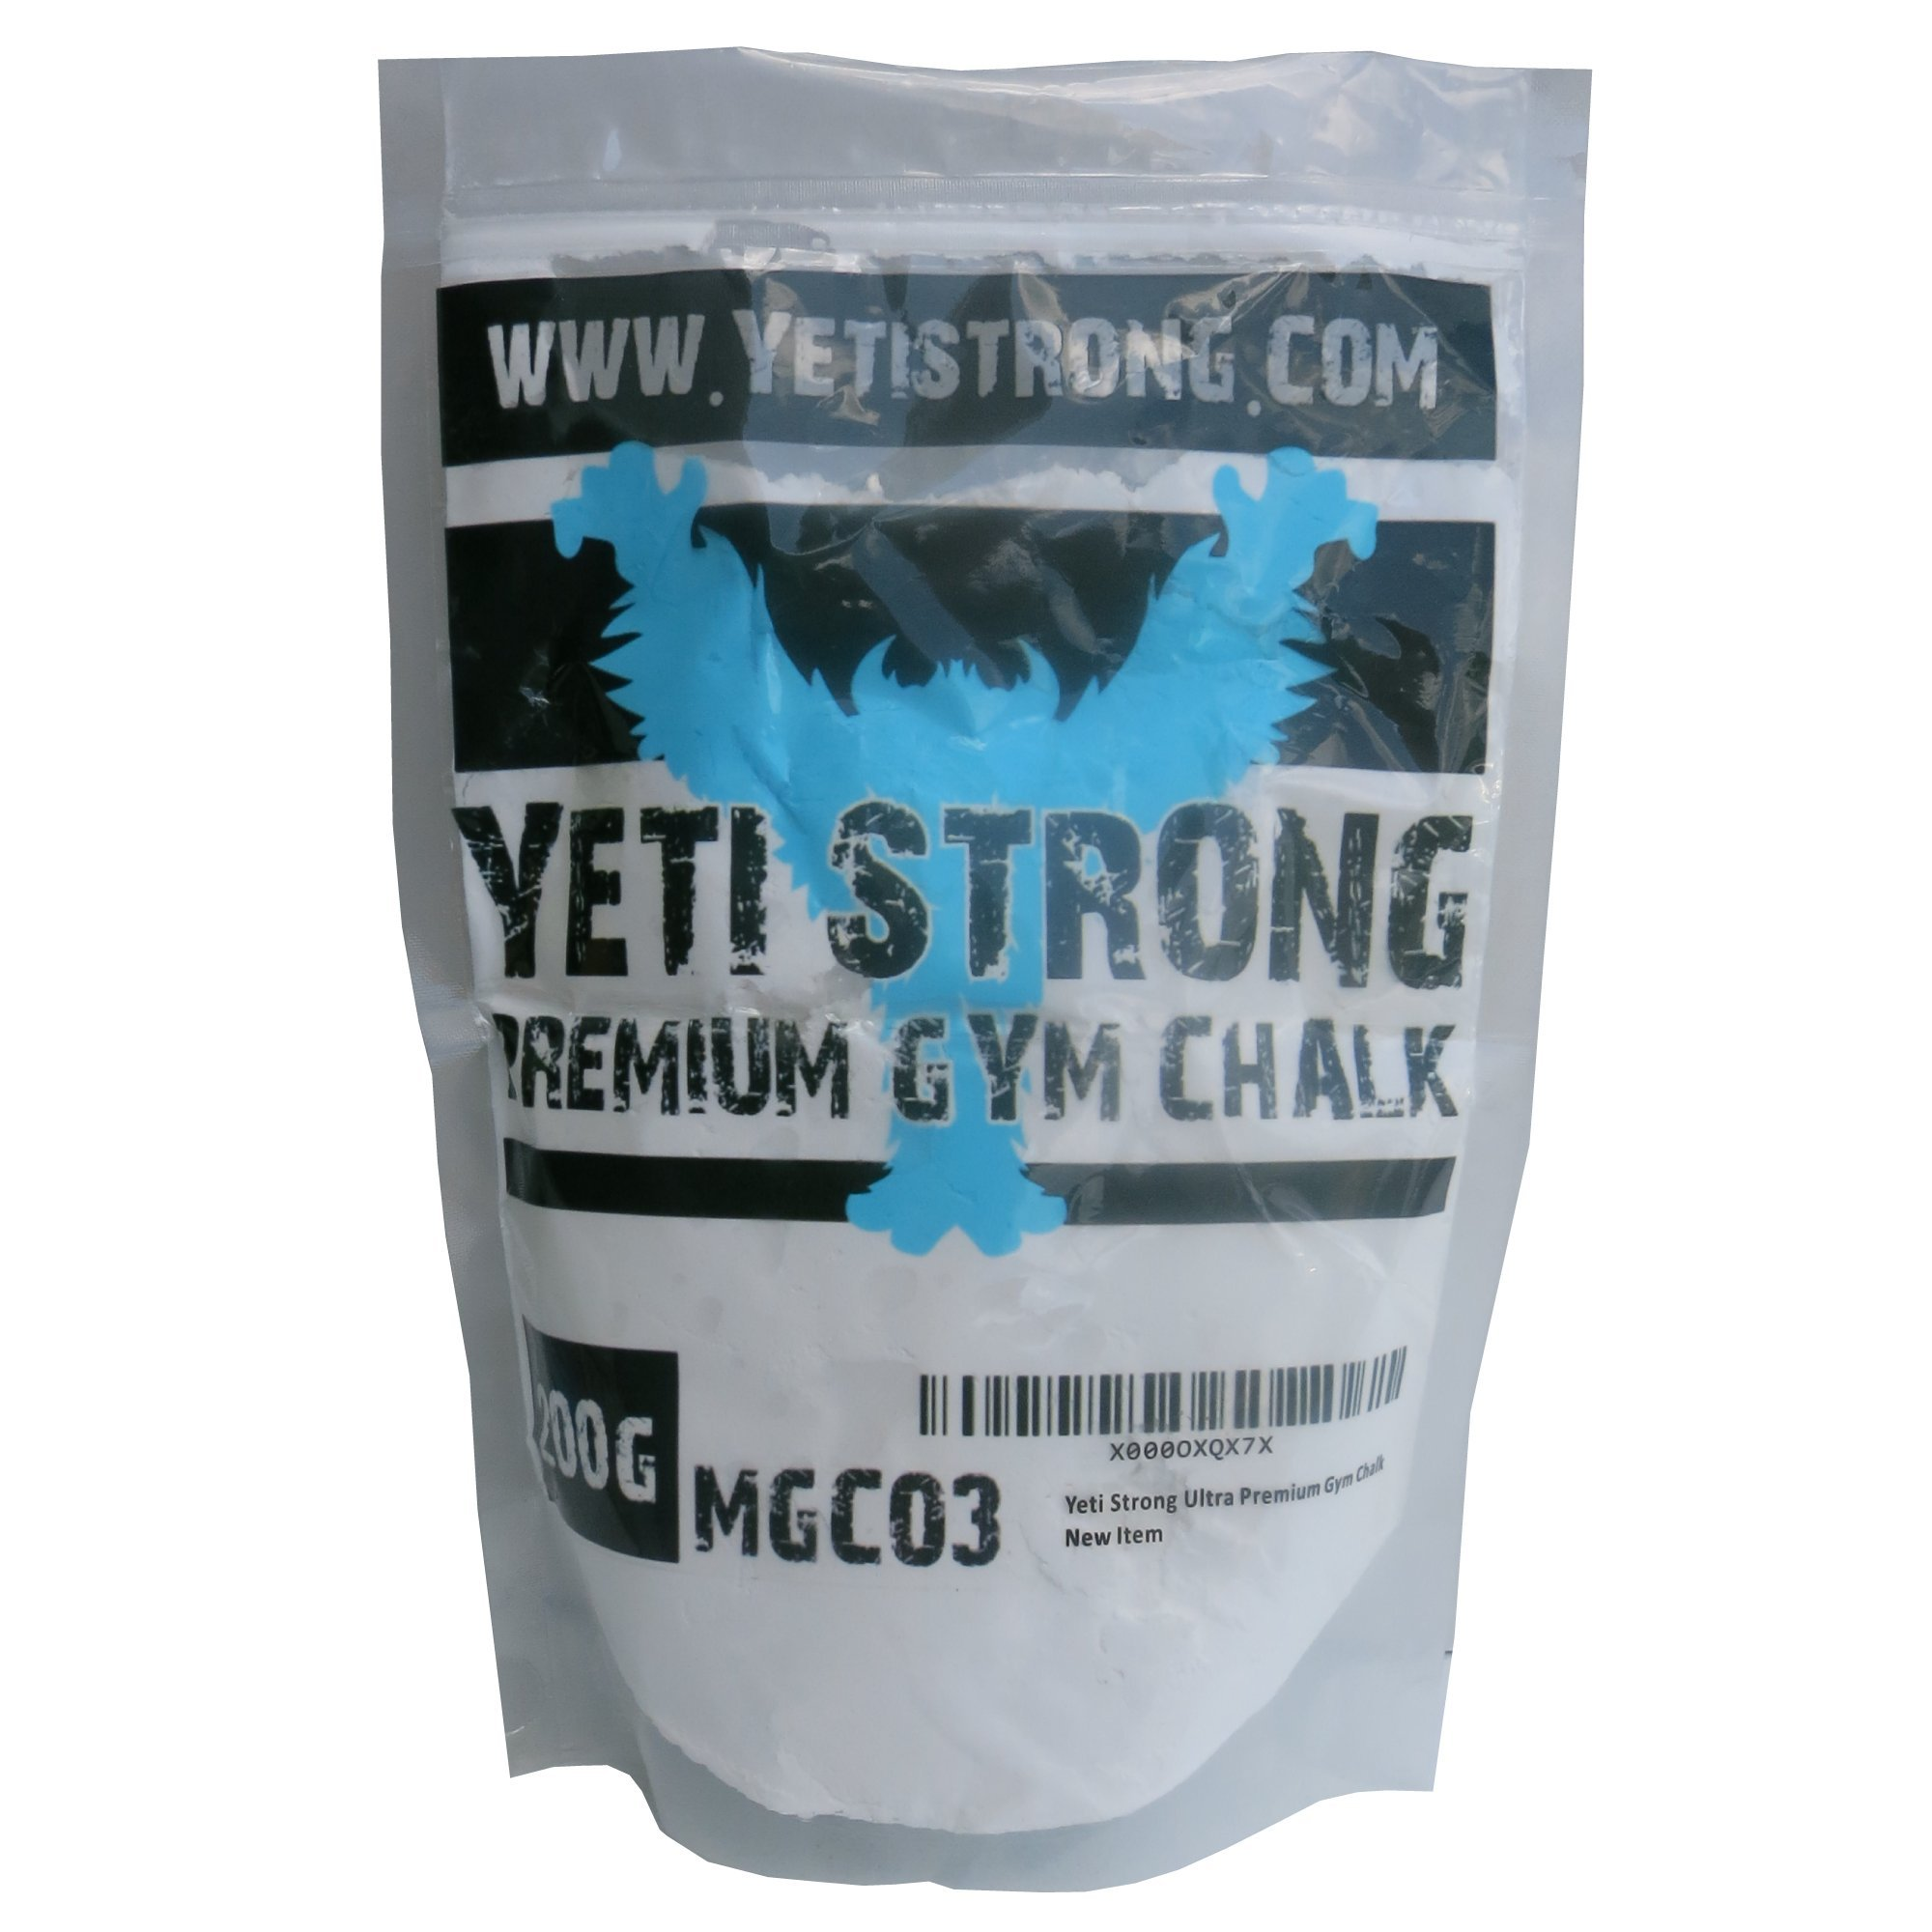 Yeti Strong Ultra-Premium Gym Chalk 200g - Best Climbing Chalk for Climbing, Weightlifting, and Gymnastics - 100%